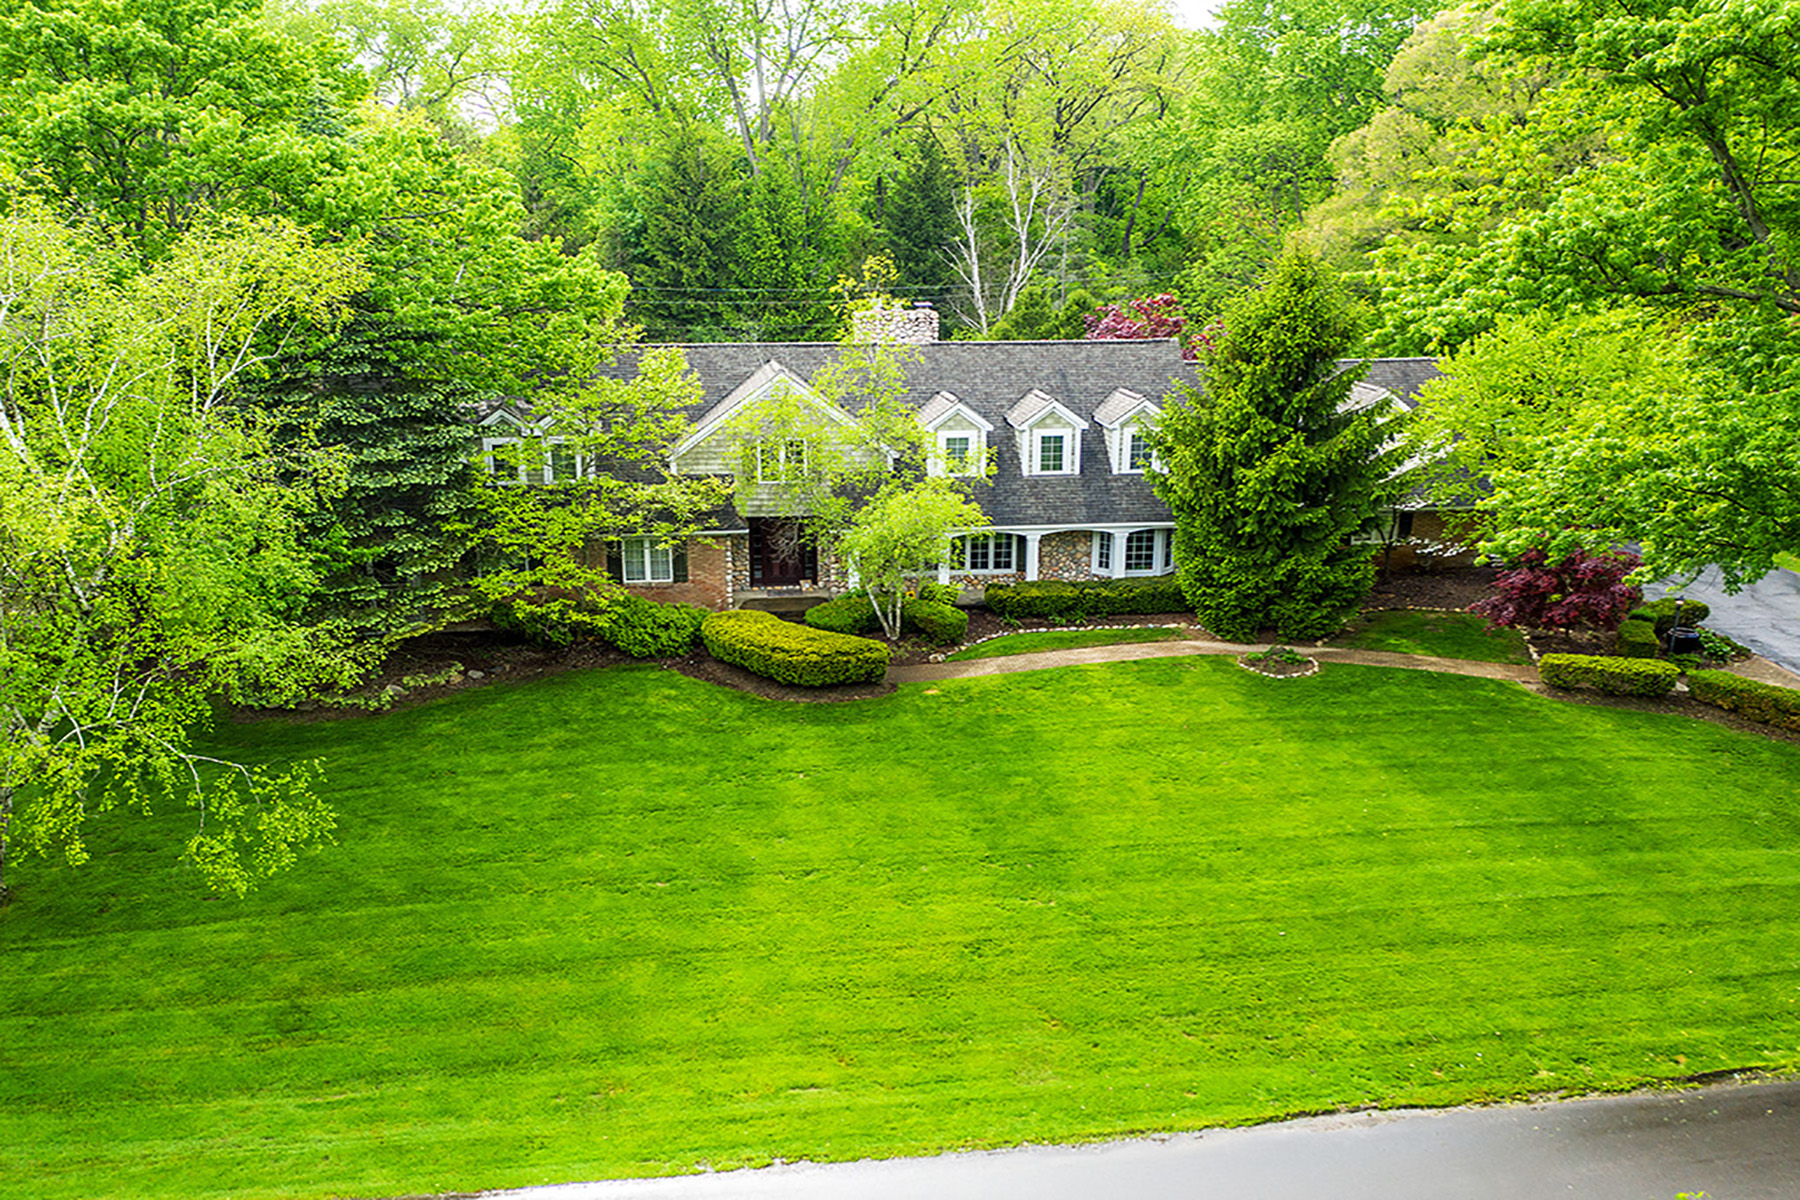 Single Family Homes for Active at Franklin Village 30745 Cheviot Hills Franklin, Michigan 48025 United States